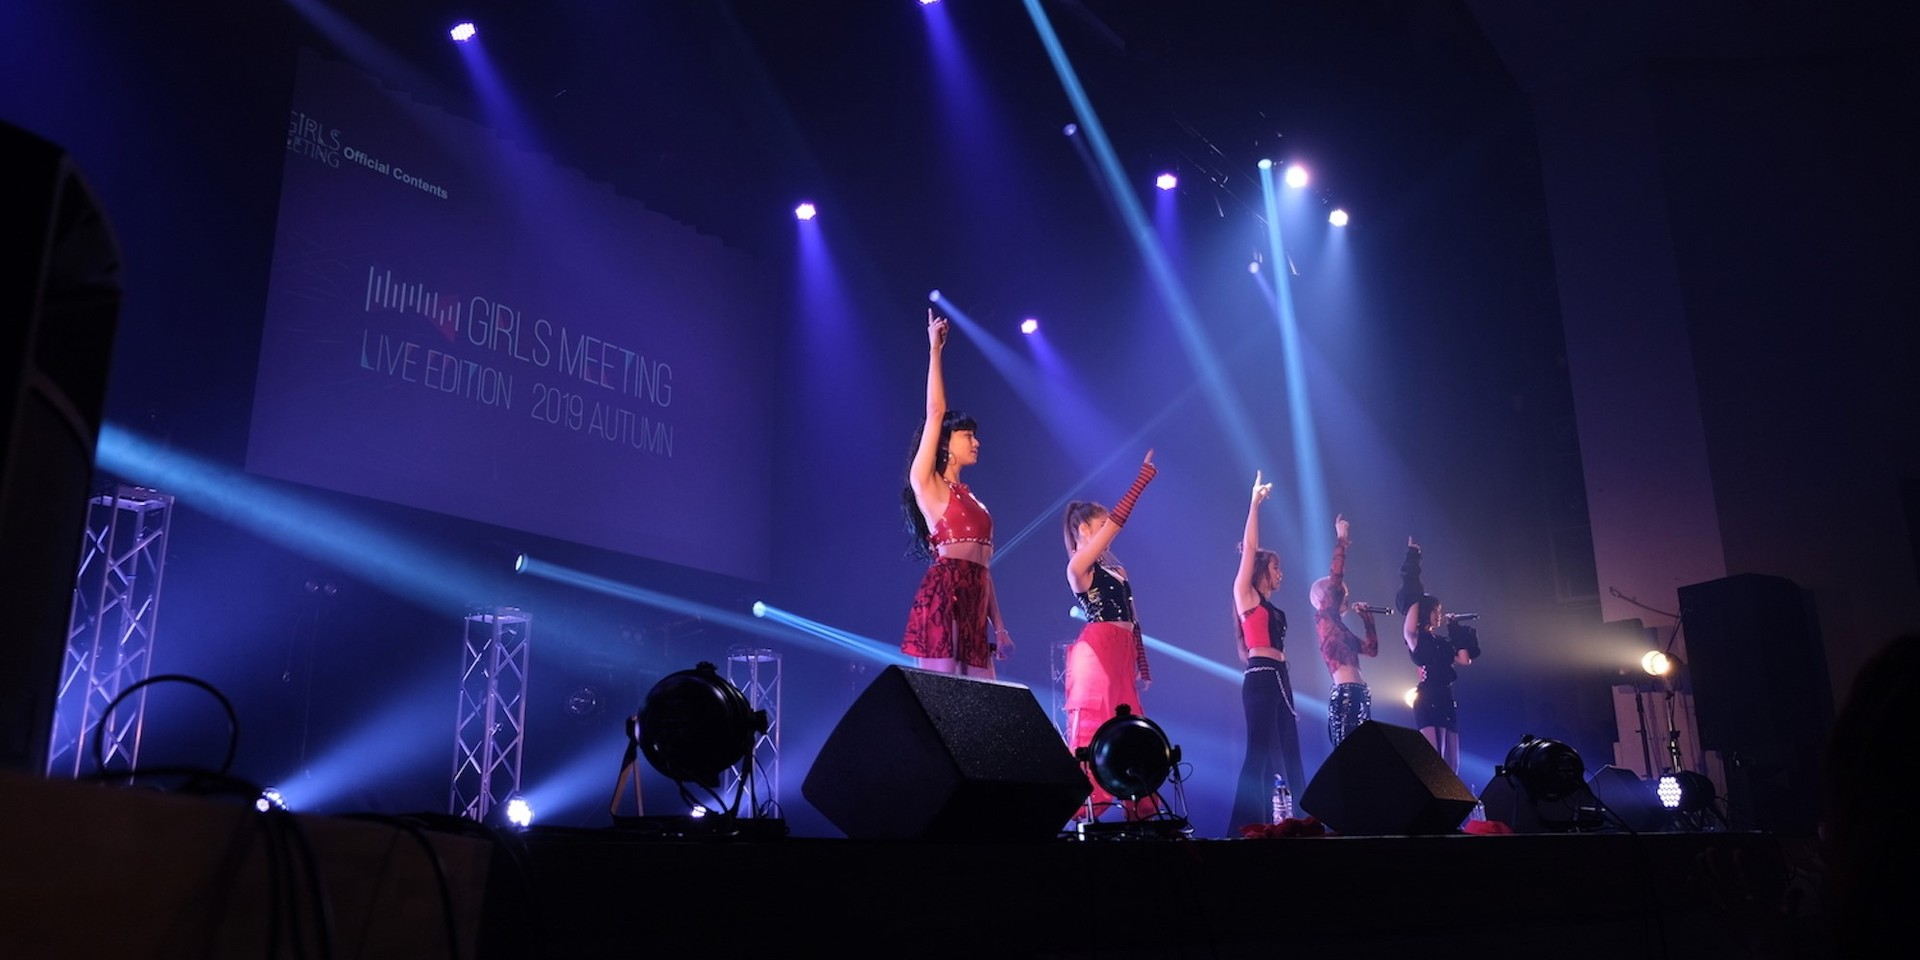 Avex Entertainment on the future of J-pop and what fans can expect from its new AEGX initiative